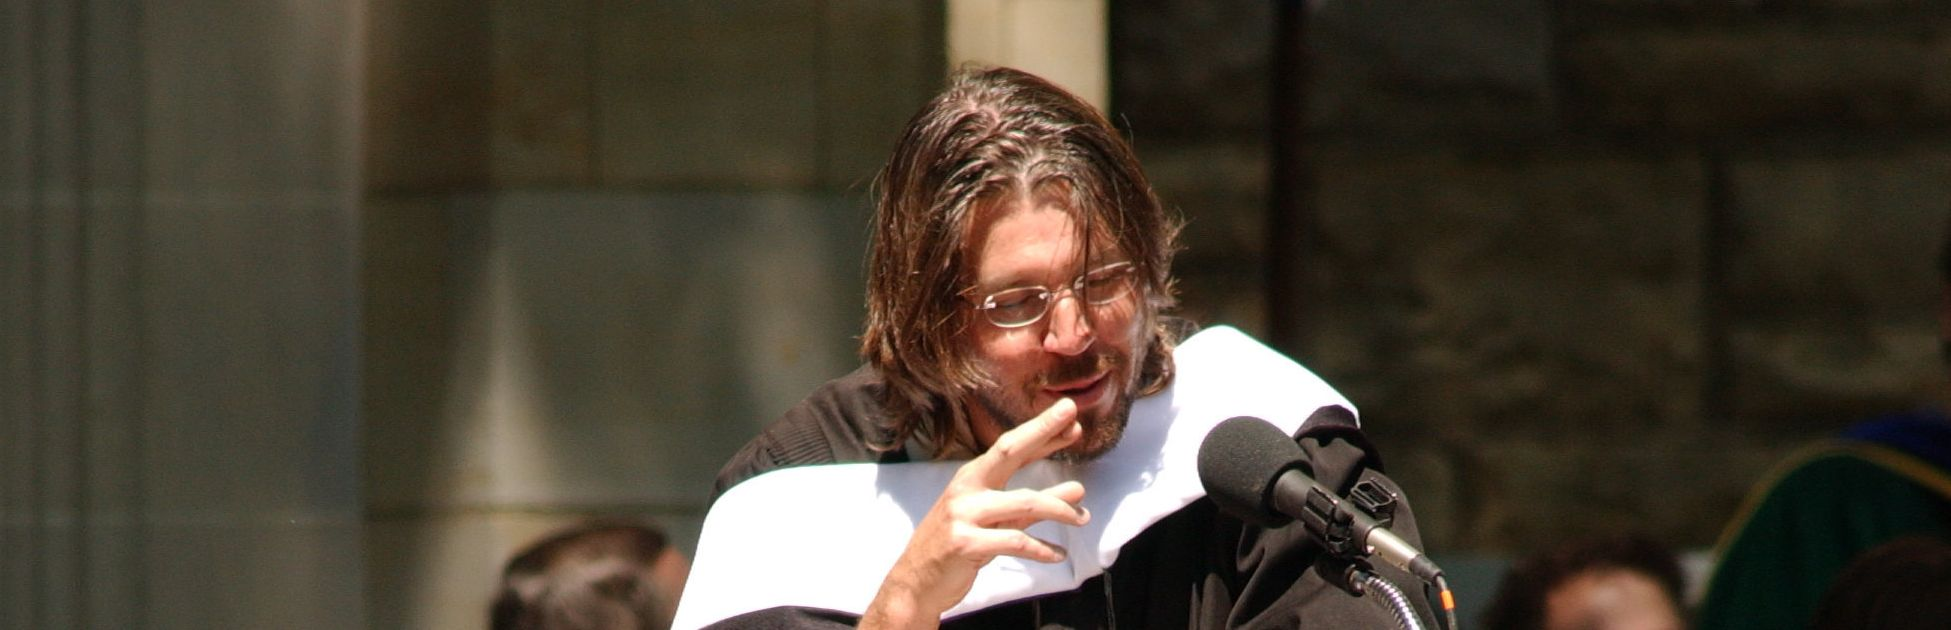 rhetorical situation david foster wallace commencement speech Transcription of the 2005 kenyon commencement address - may 21, 2005 written and delivered by david foster wallace (if anybody feels like perspiring [cough], i'd advise you to go ahead.